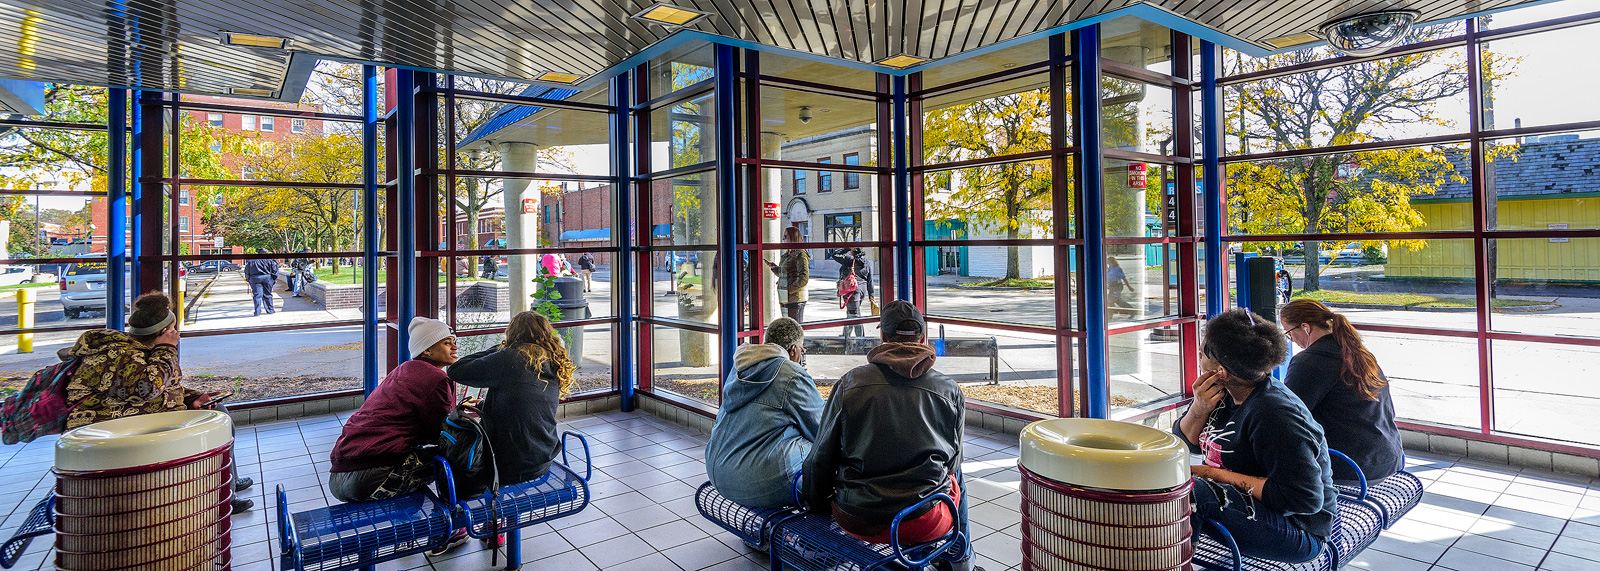 The Ypsilanti Transit Center <span class='image-credits'>Doug Coombe</span>